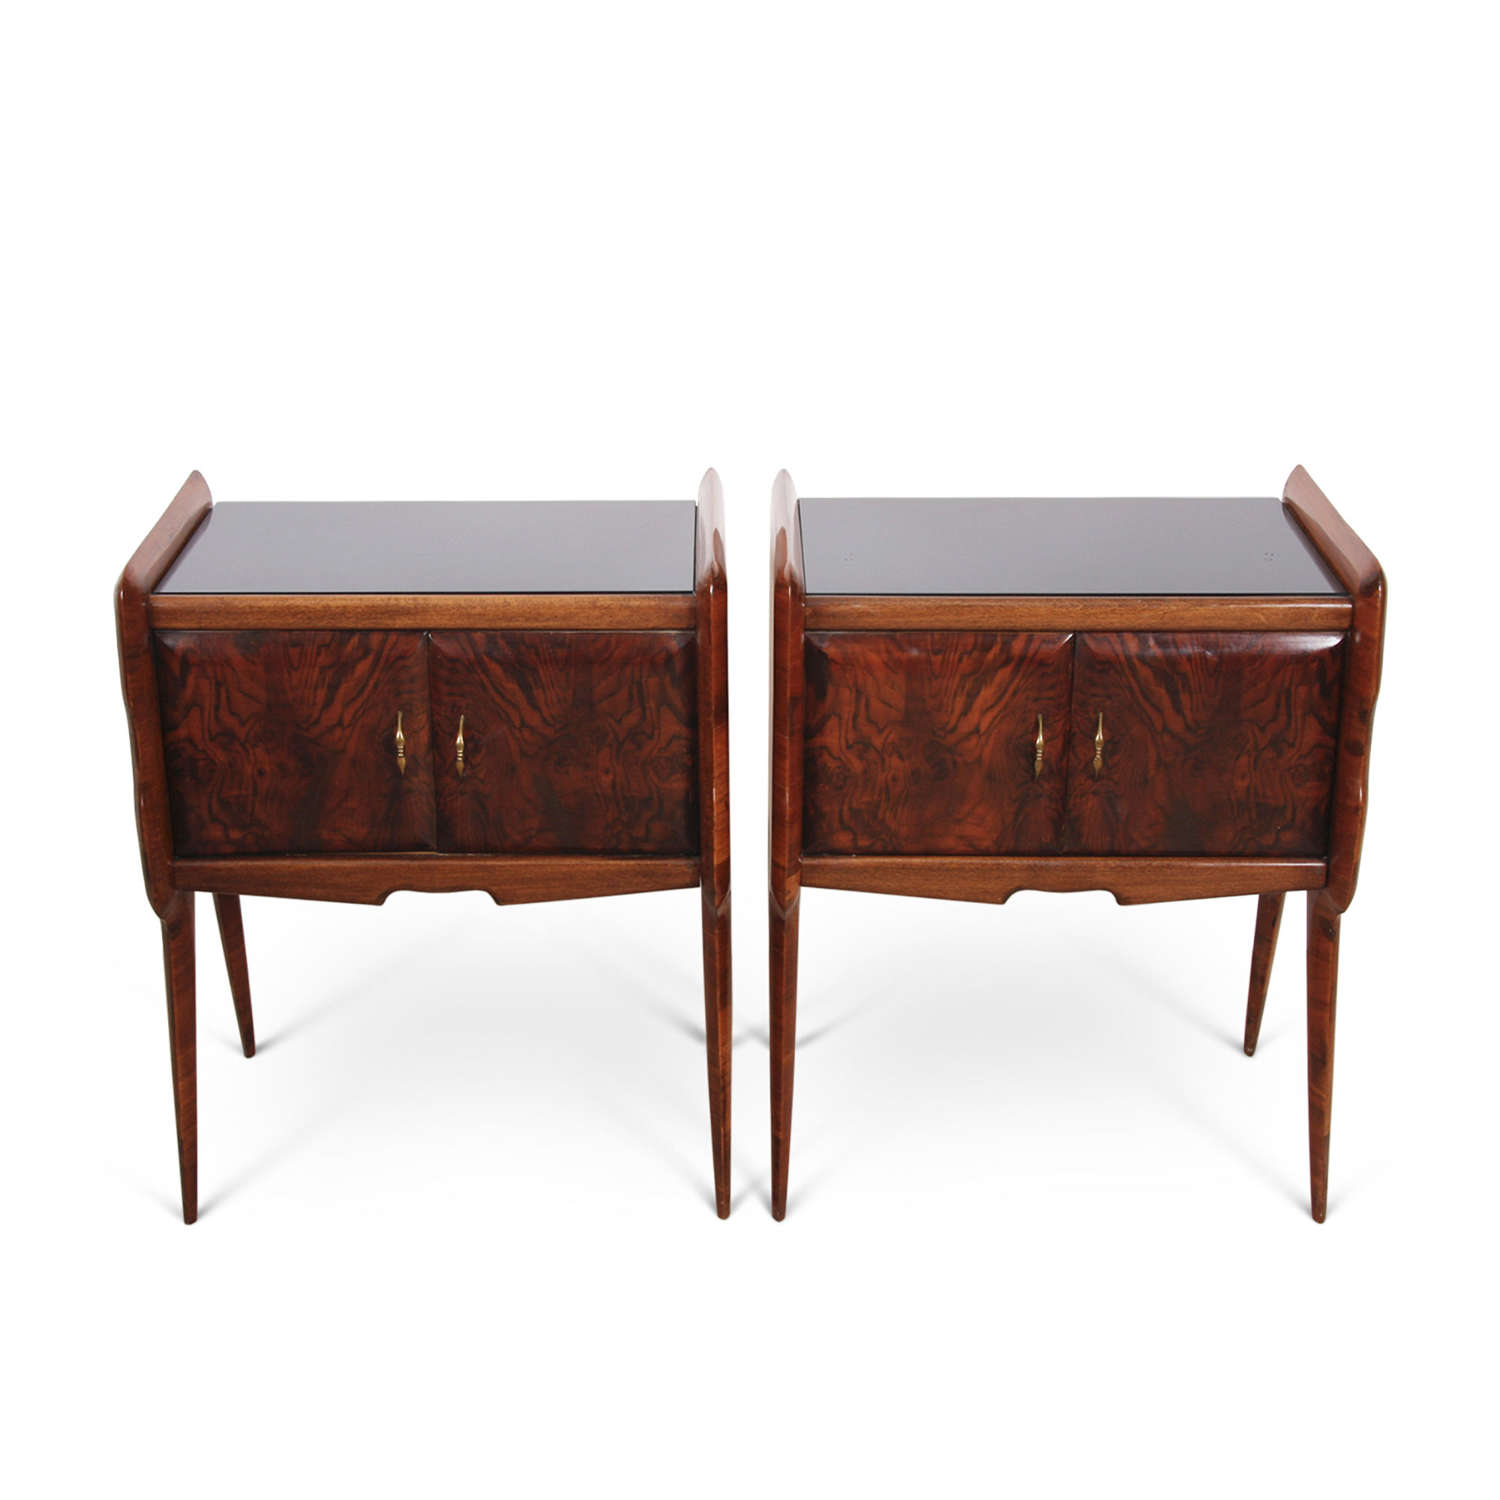 Pair of Borsani Style Bedside Cabinets